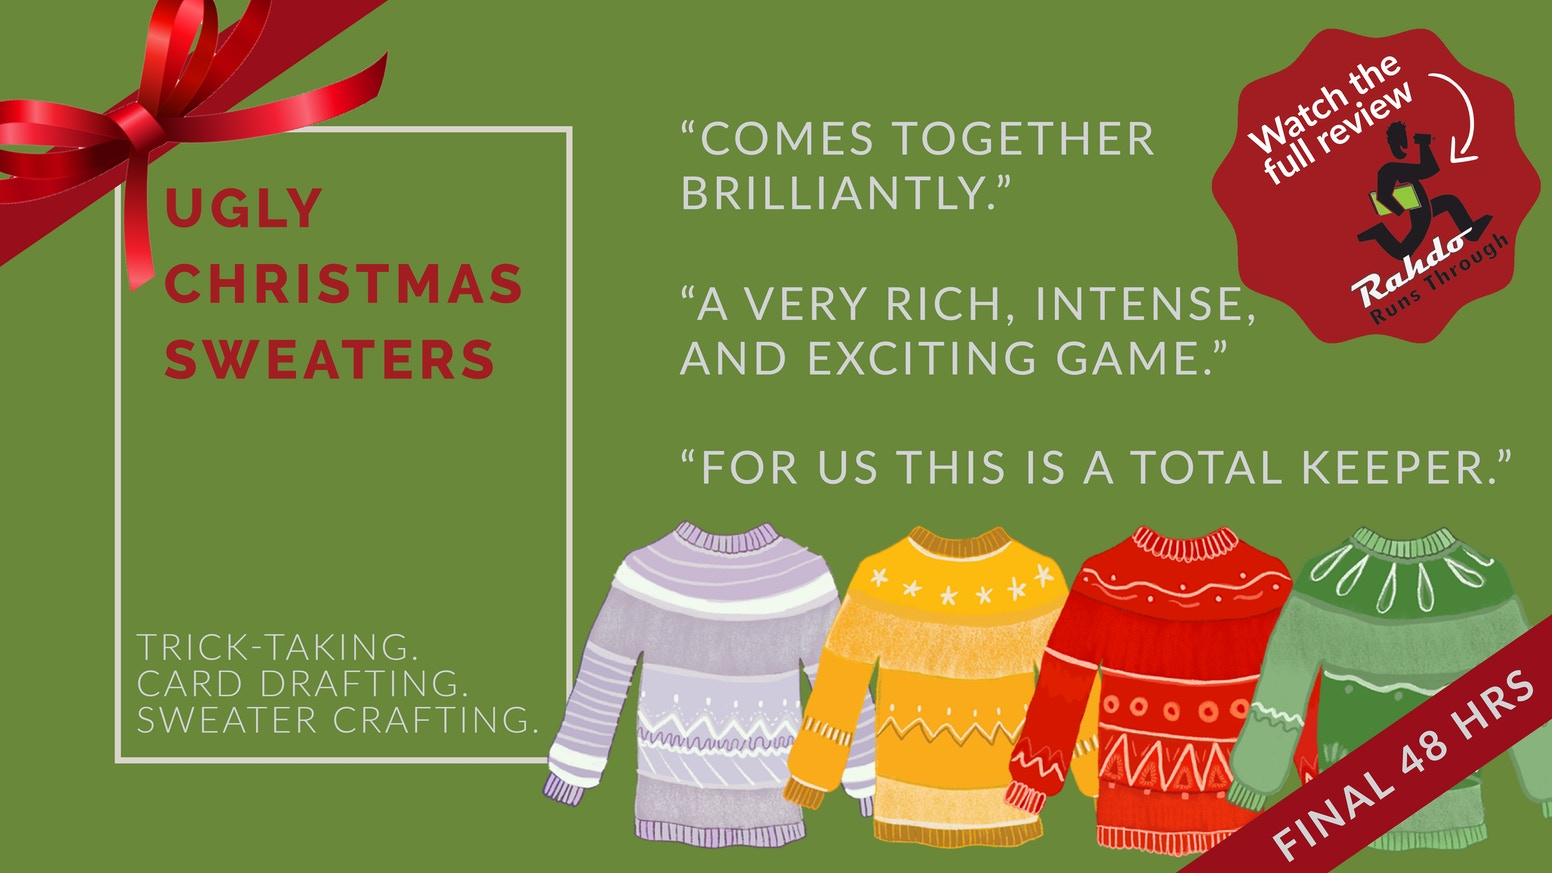 Missed the campaign? Don't sweat it. You can pre-order your copy of 'Ugly Christmas Sweaters' by clicking the link below.